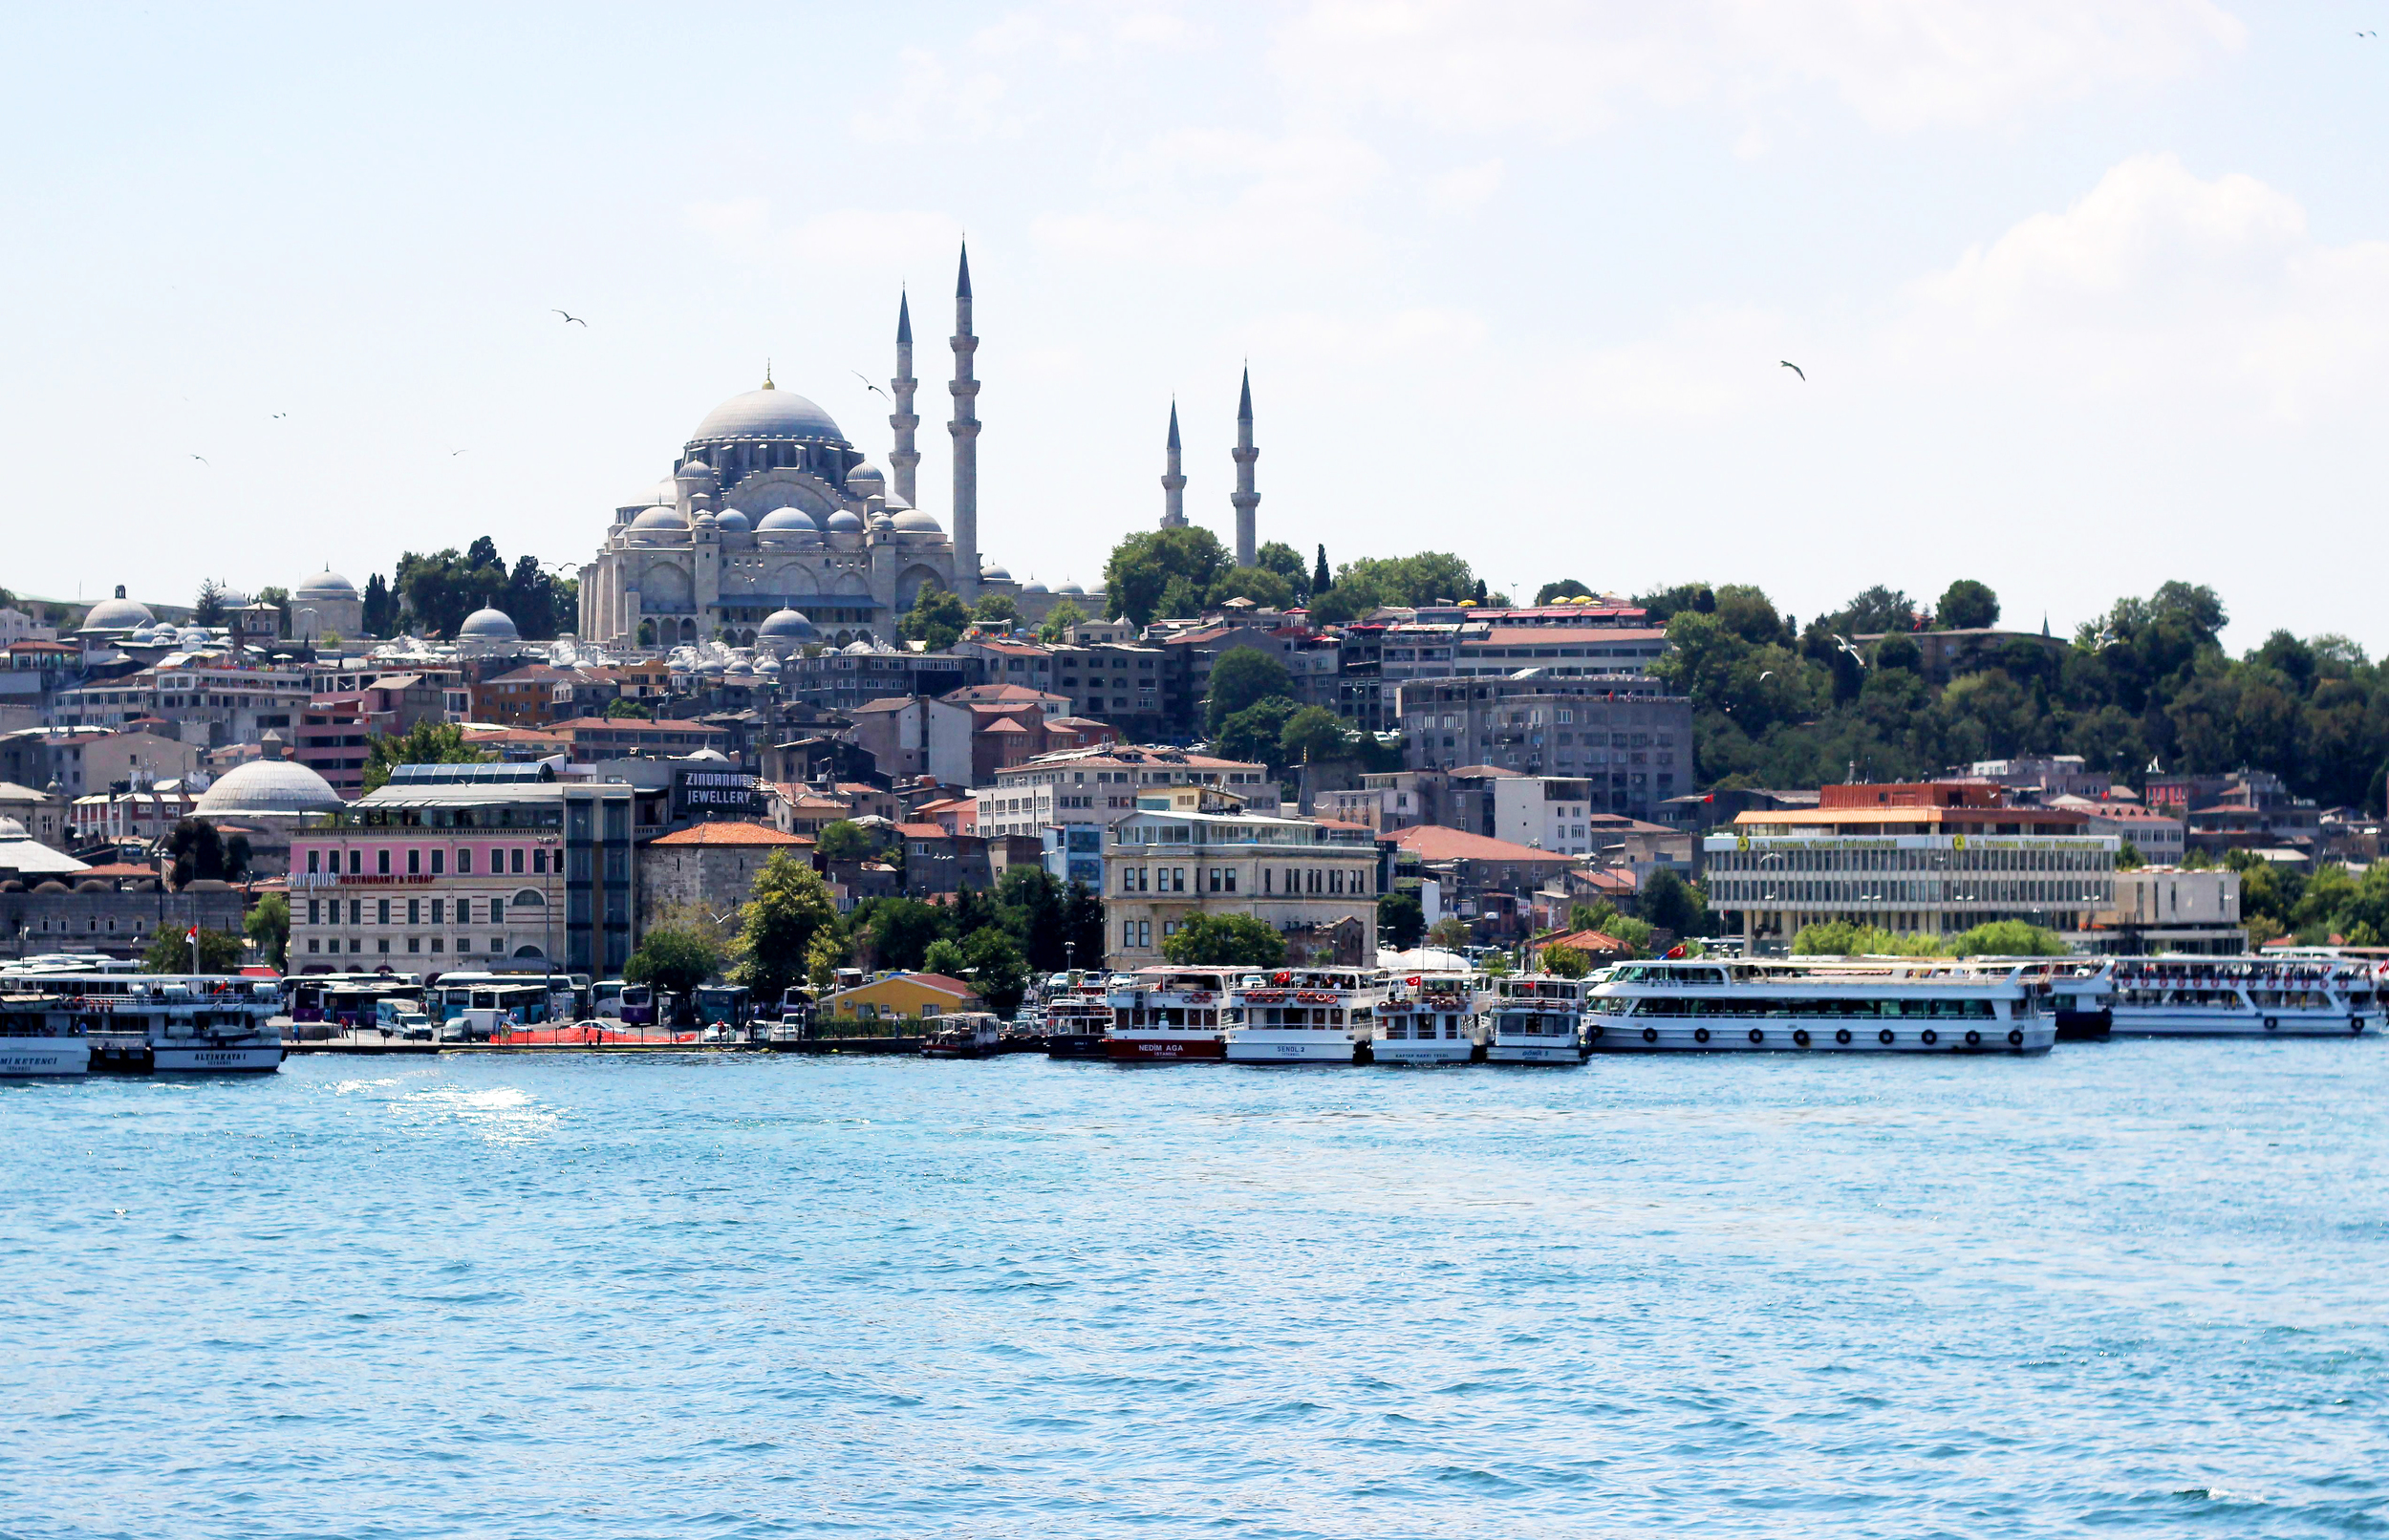 Views from the Bosphorus River Cruise